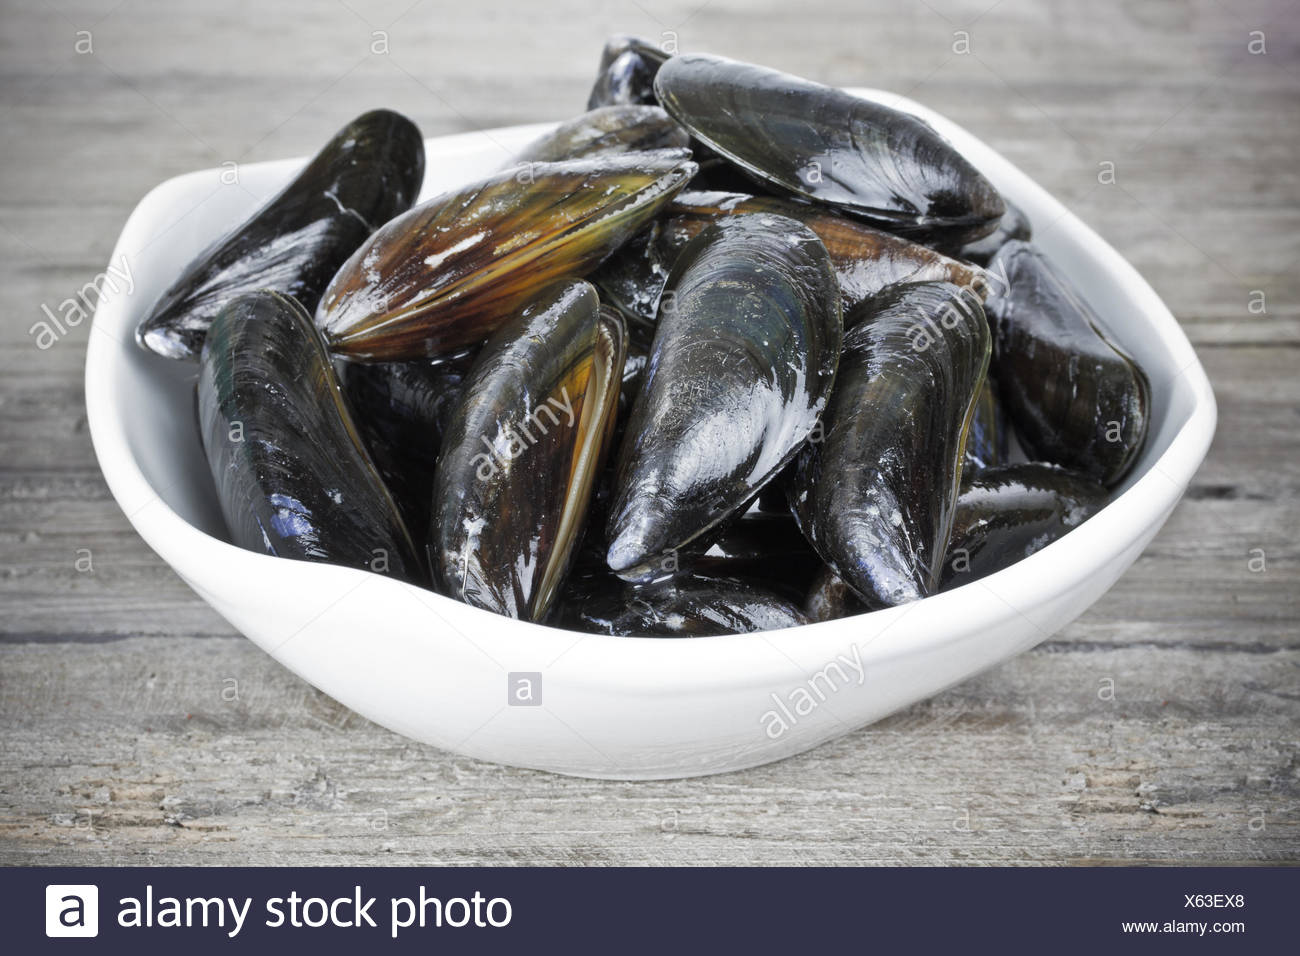 mussels - Stock Image